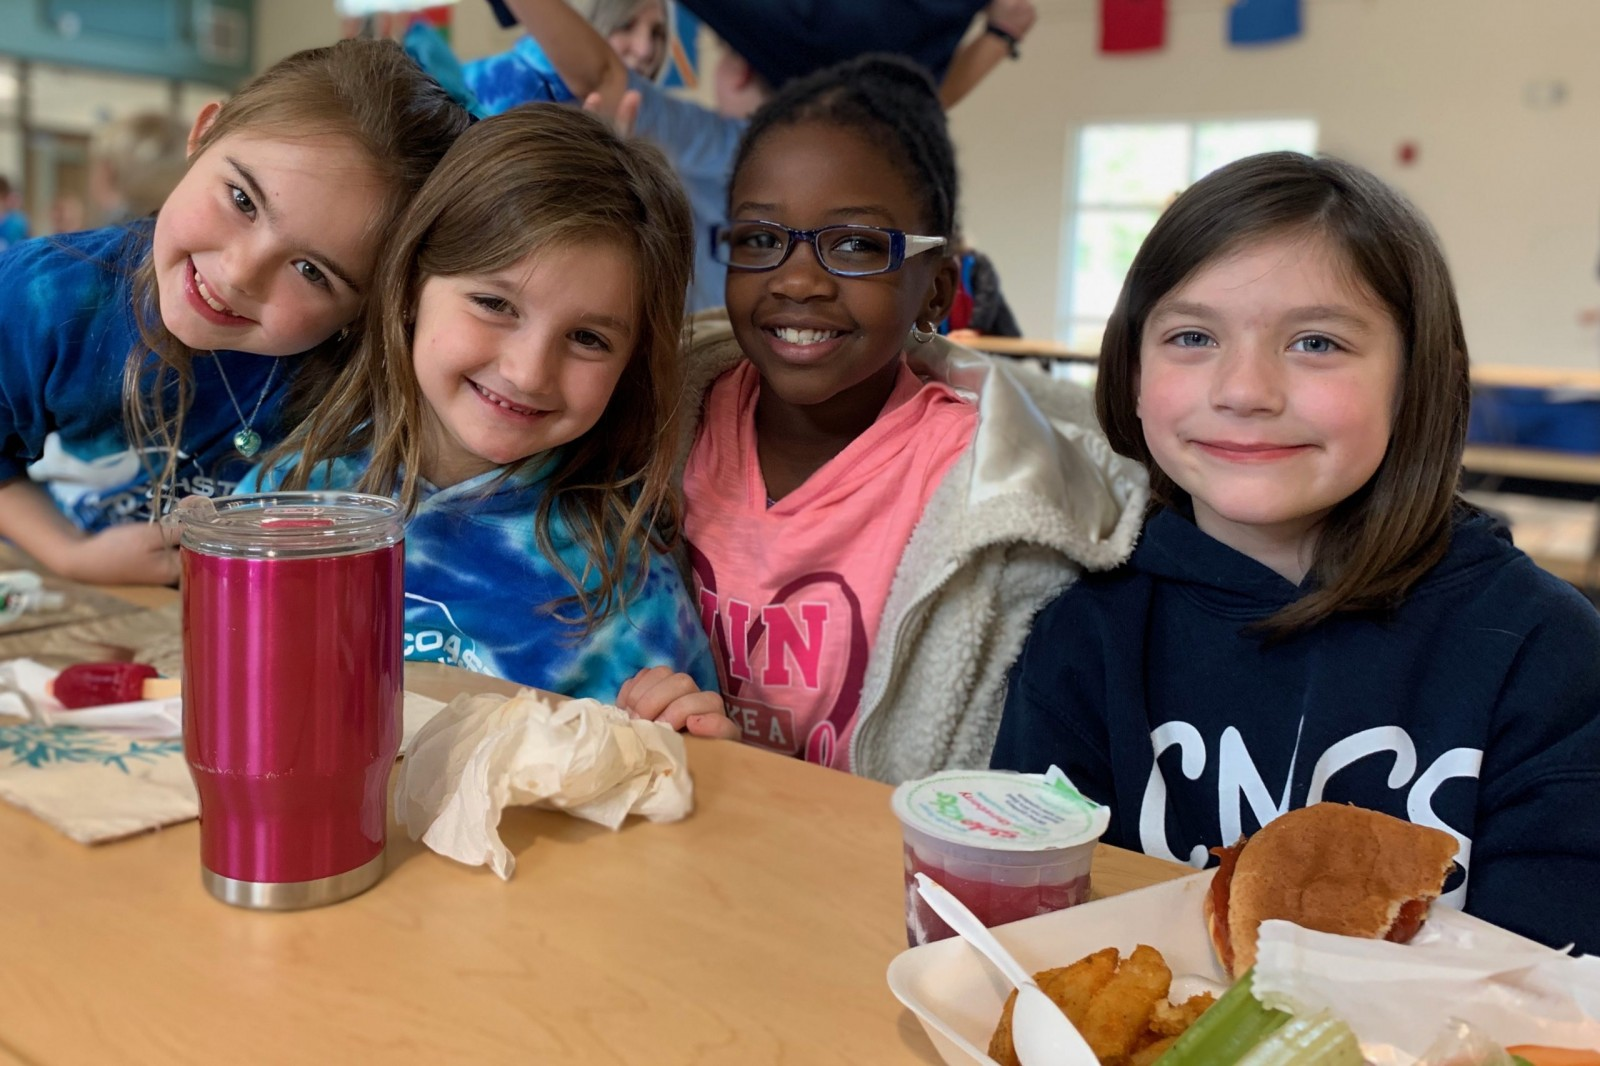 Lower Elementary girls eating lunch